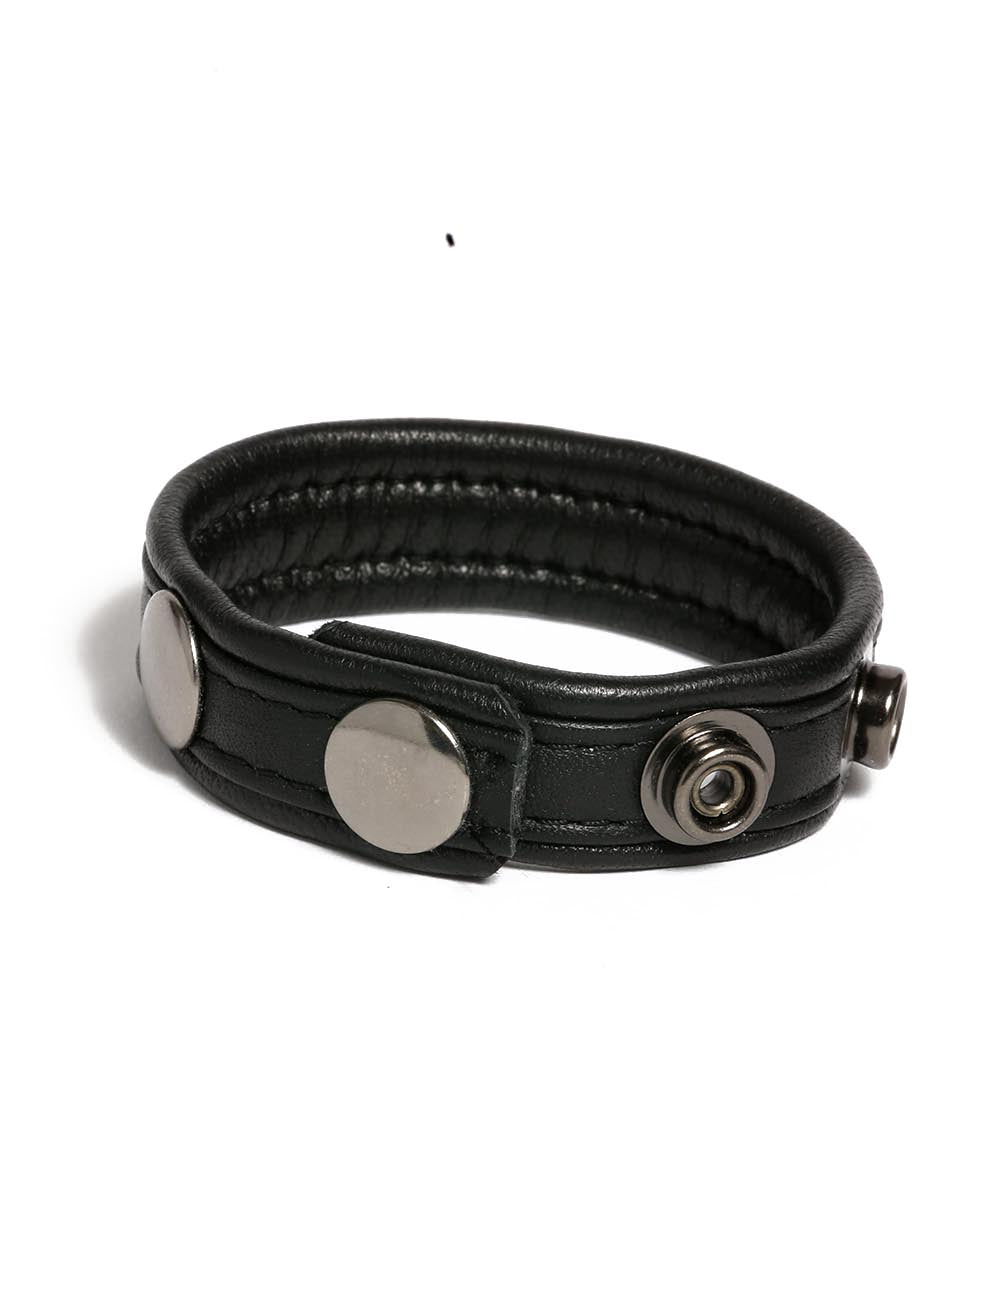 Adjustable Leather Cock Ring with snaps in Black